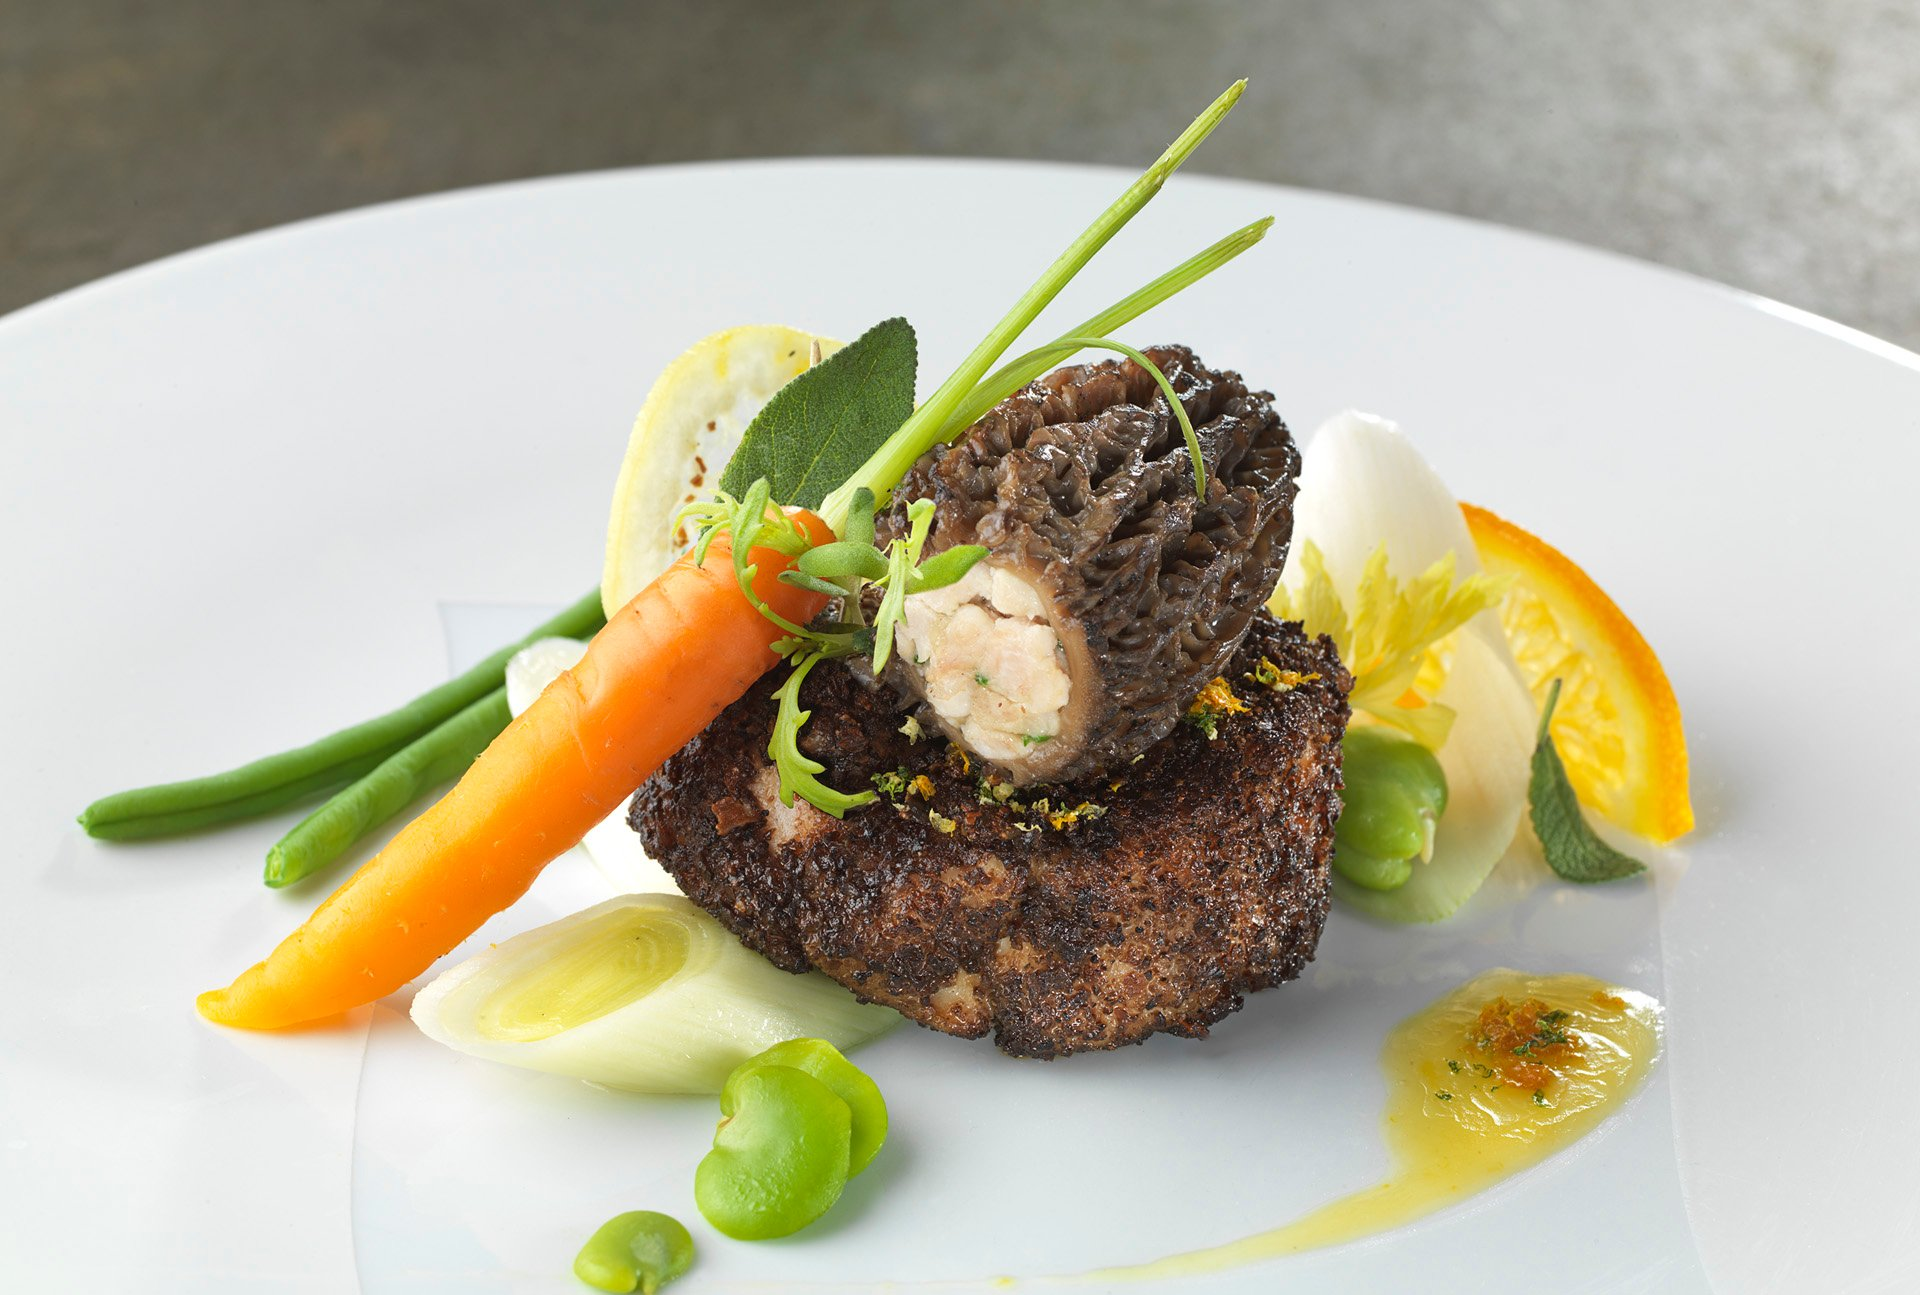 Fantasy of veal sweetbreads coated in morel mushrooms, fresh vegetables with citrus butter